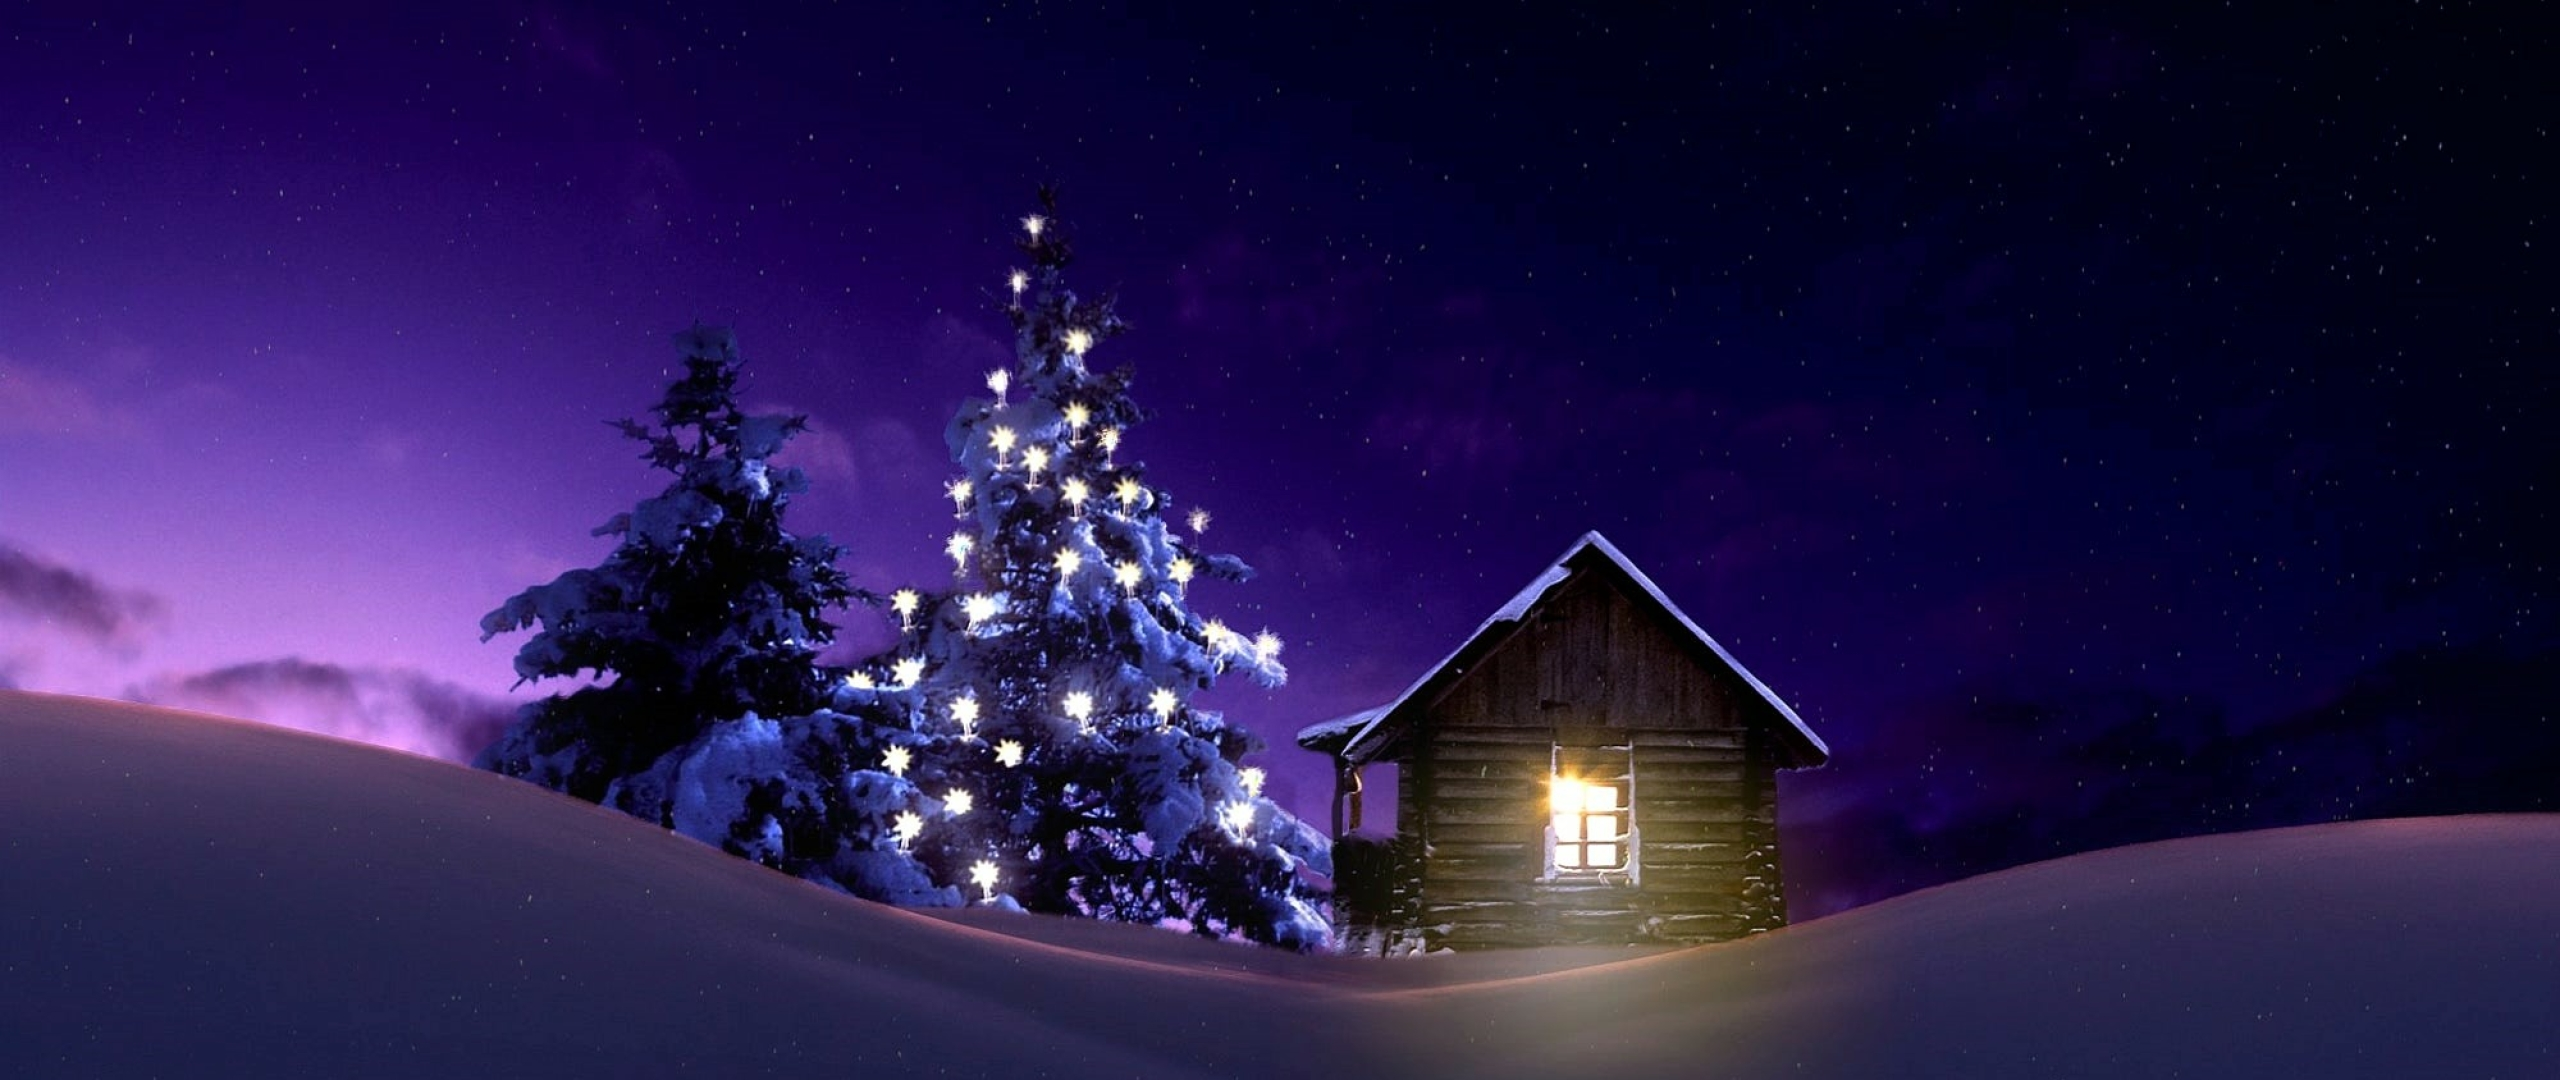 Christmas Lighted Tree Outside Winter Cabin Full Hd 2k Wallpaper